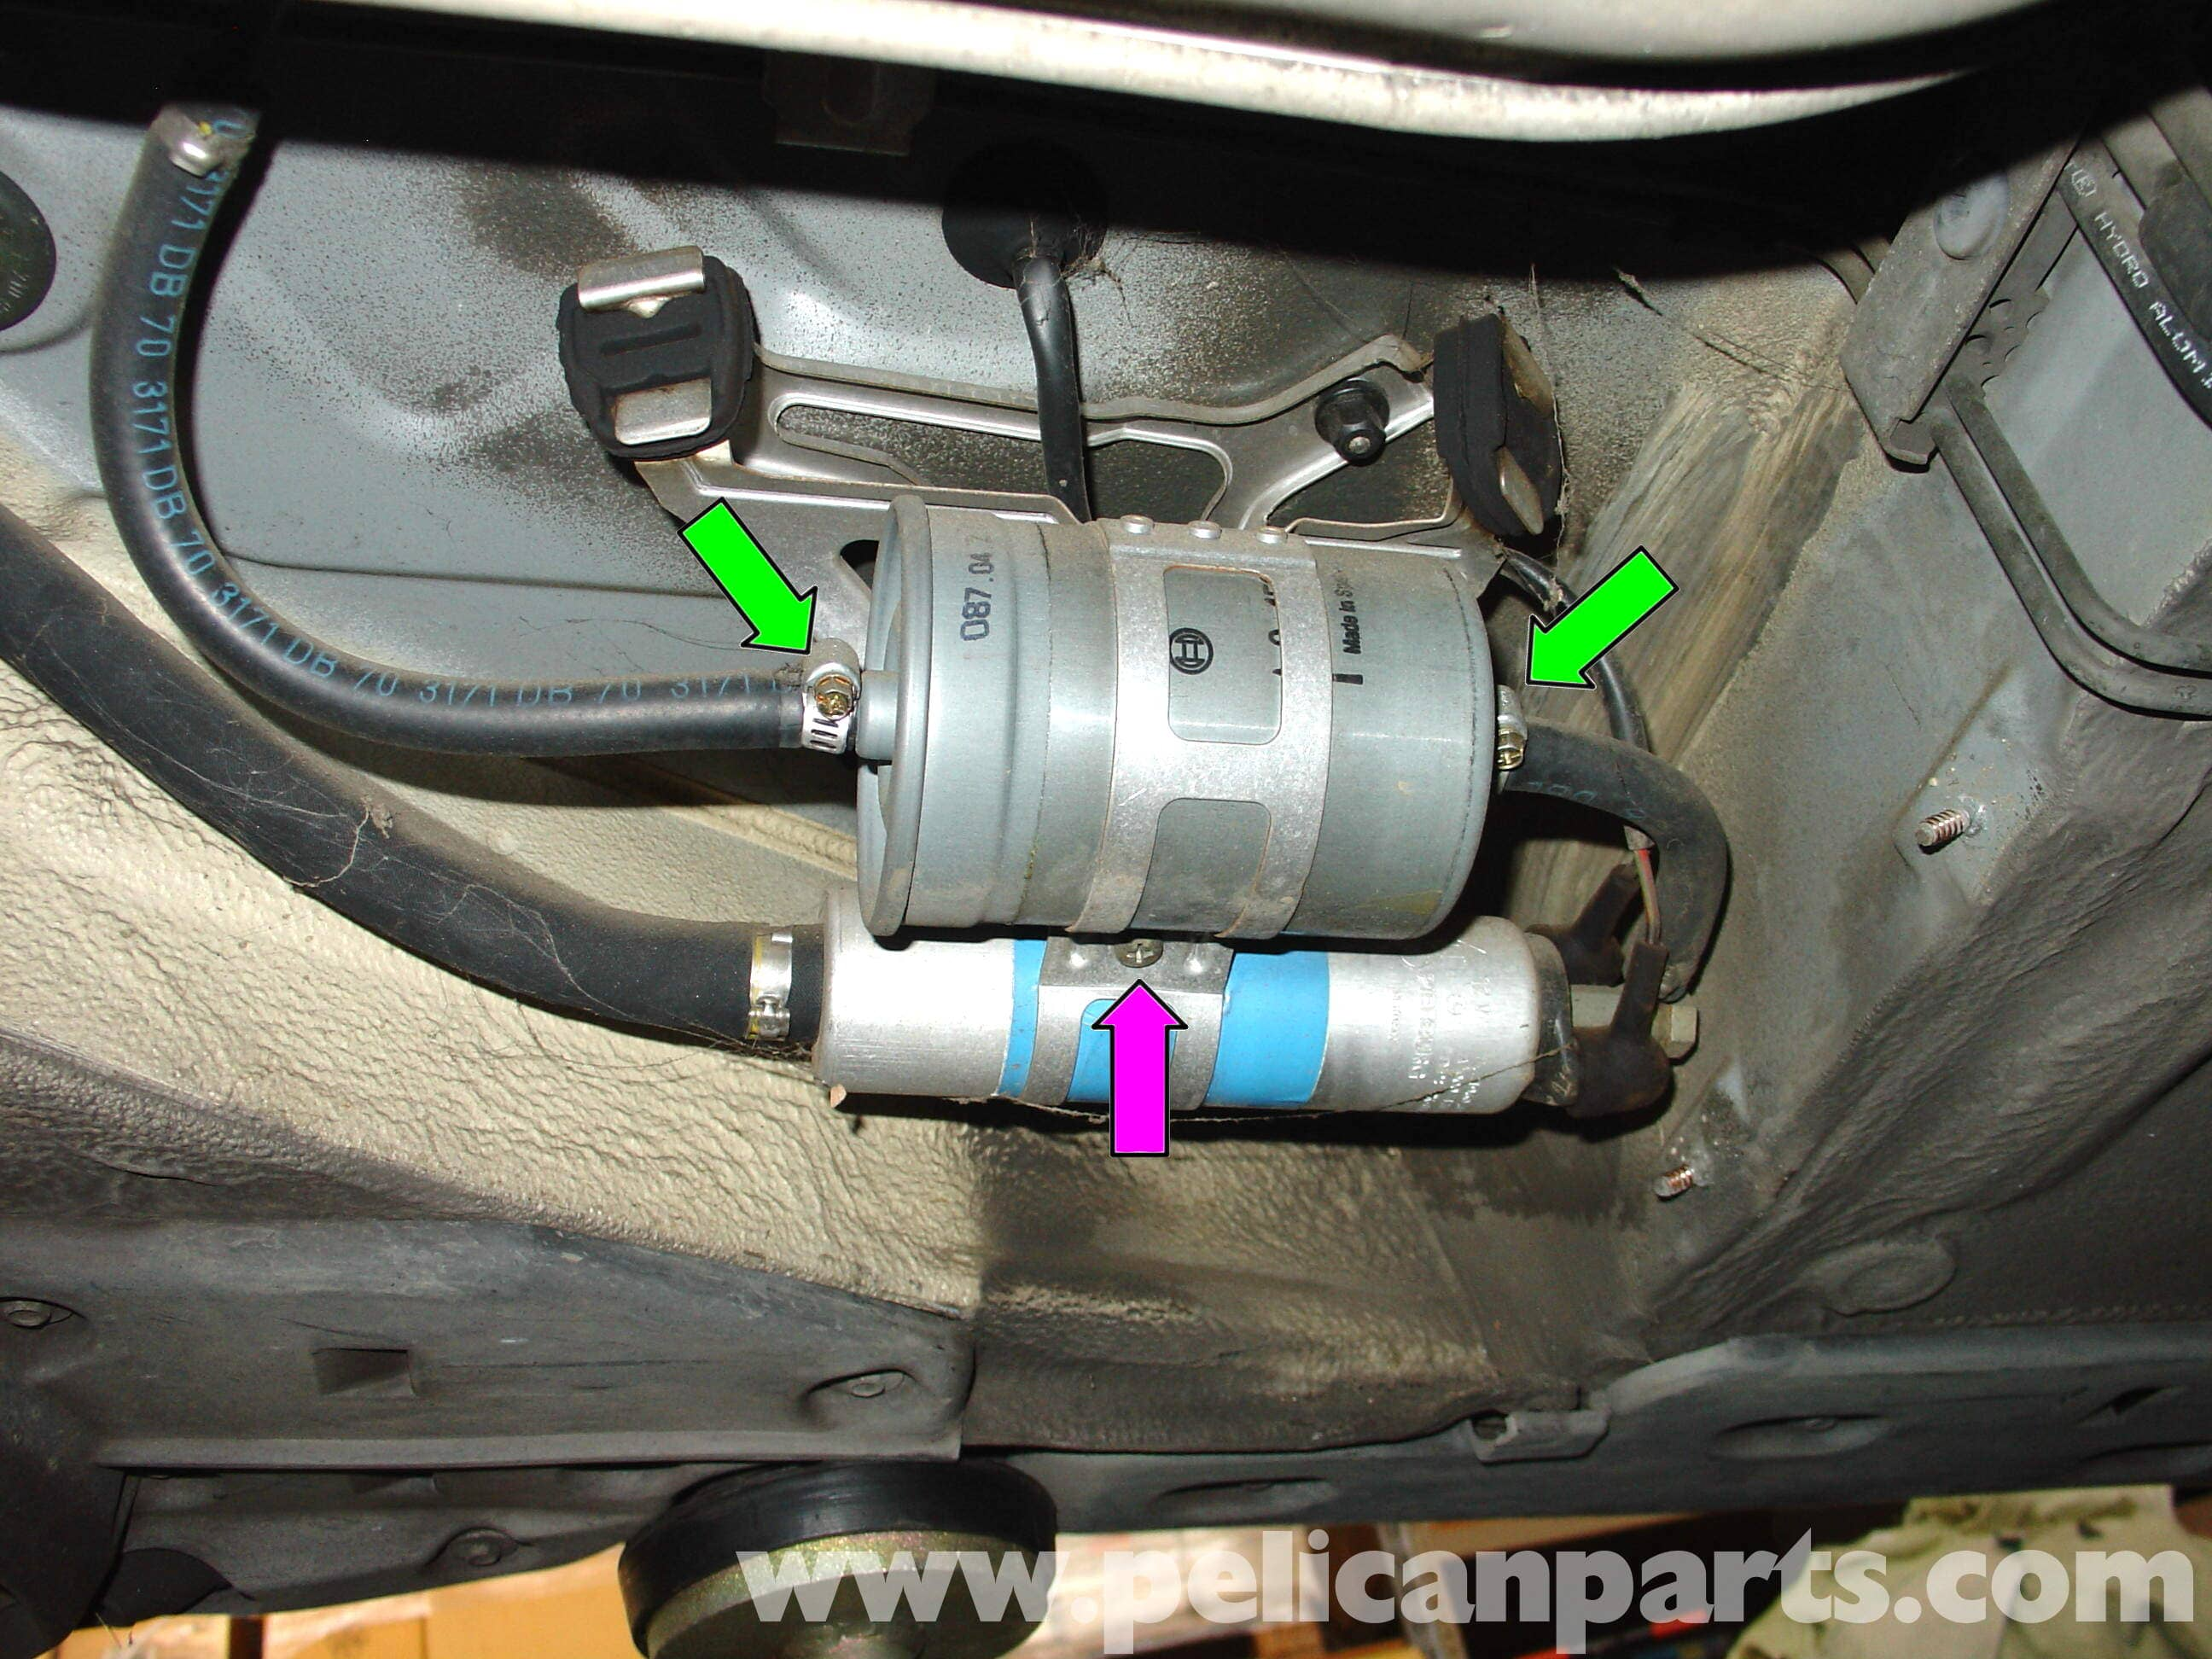 99 Toyota Camry Fuel Filter Location Wiring Library Chevy Blazer Large Image Extra Mercedes Benz W210